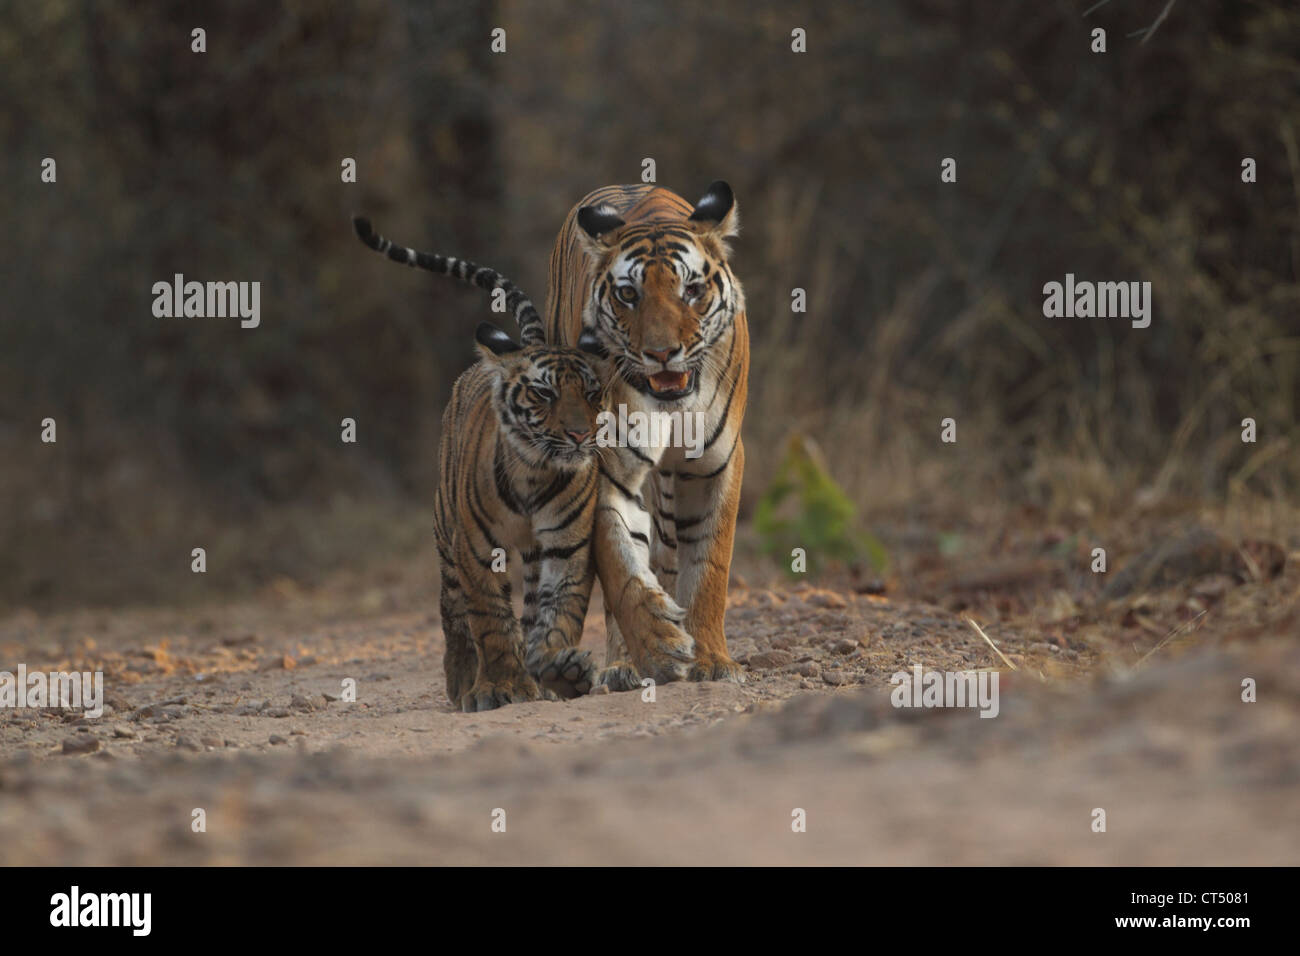 Tiger cub with mother in Bandhavgarh National Park - Stock Image